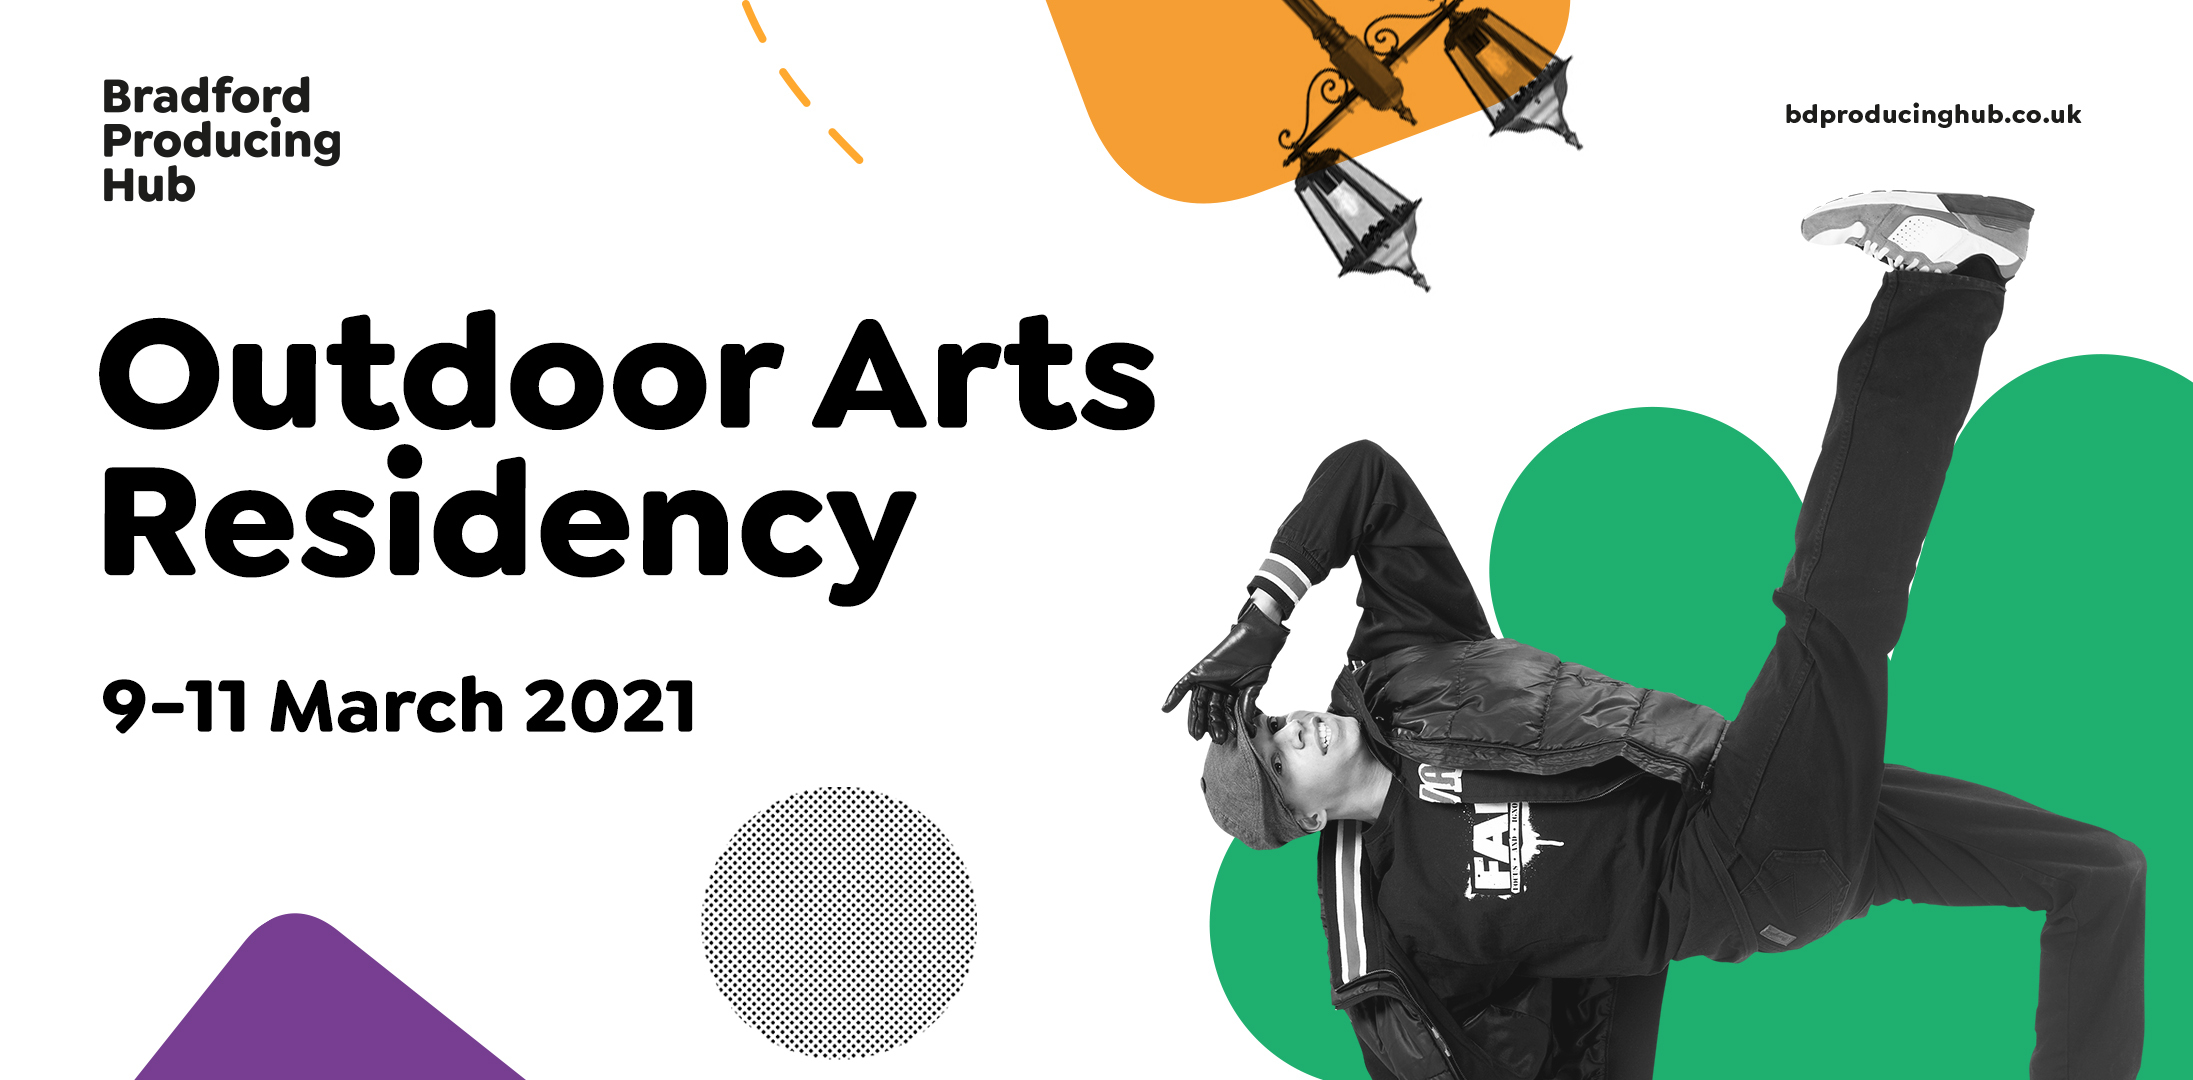 Outdoor Arts Residency